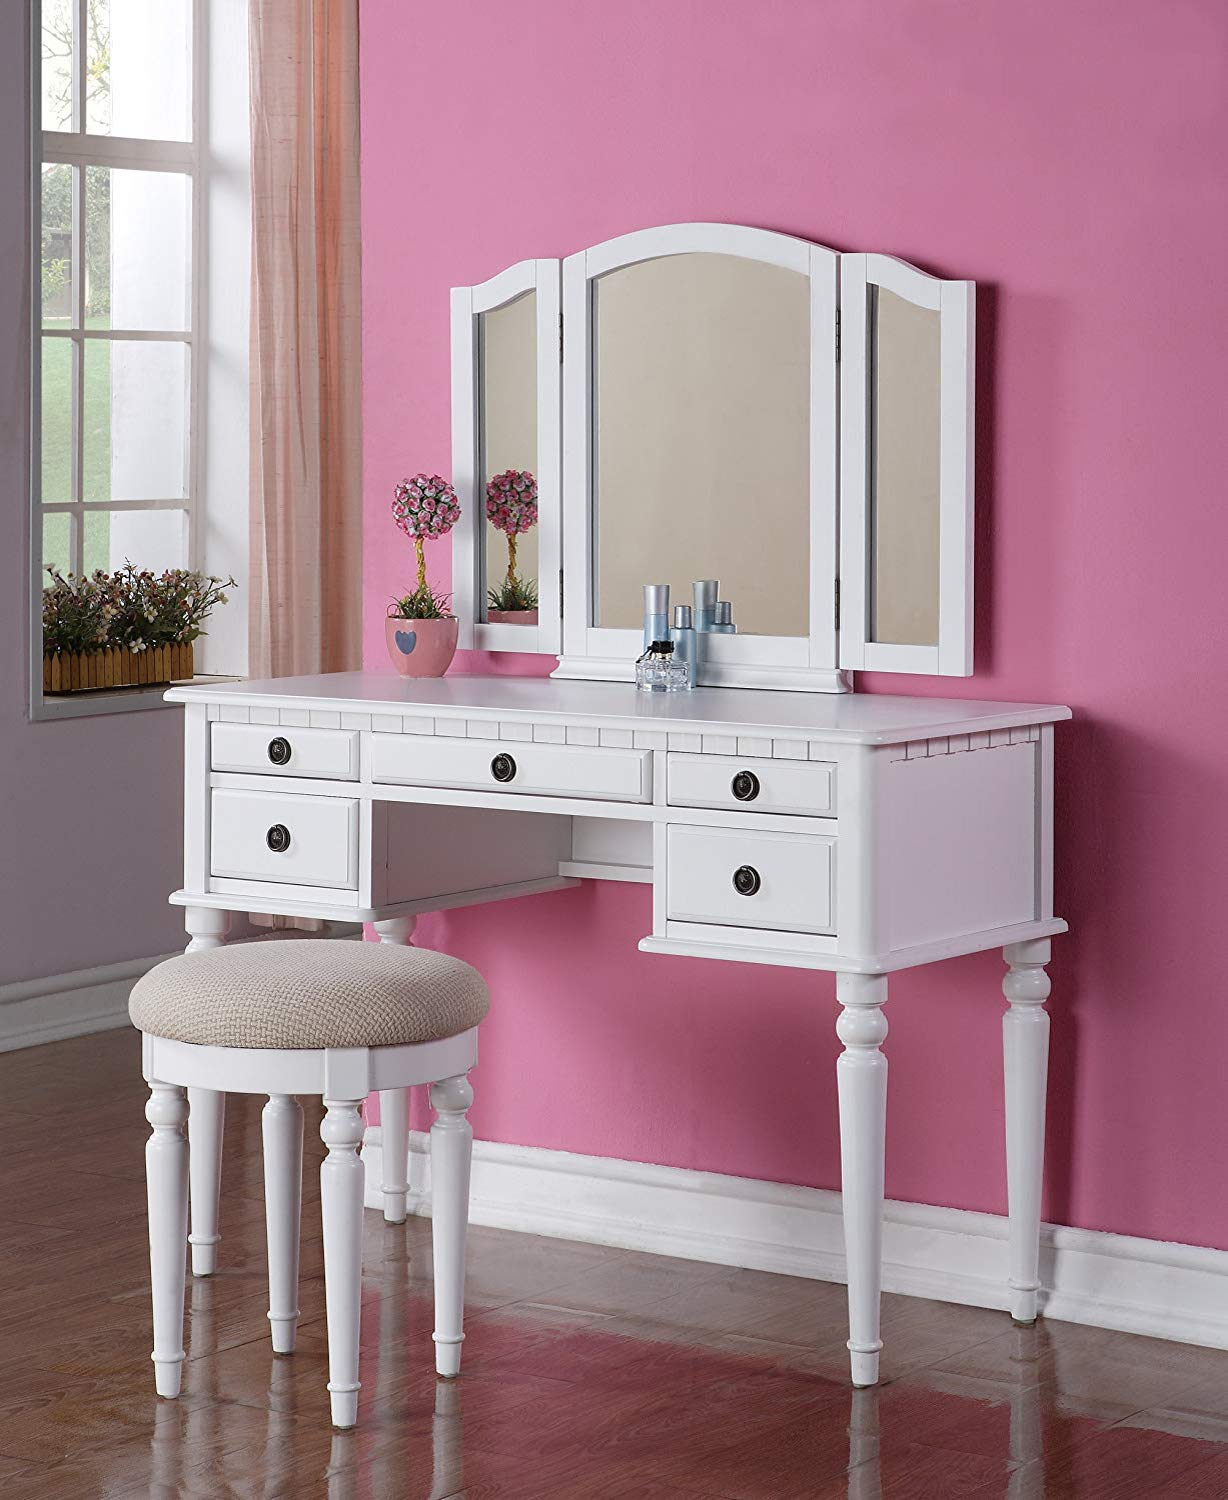 Vanity Set with Mirror and Stool Vintage Antique Makeup Dresser for Women Table Drawer Organizer Bedroom Furniture White